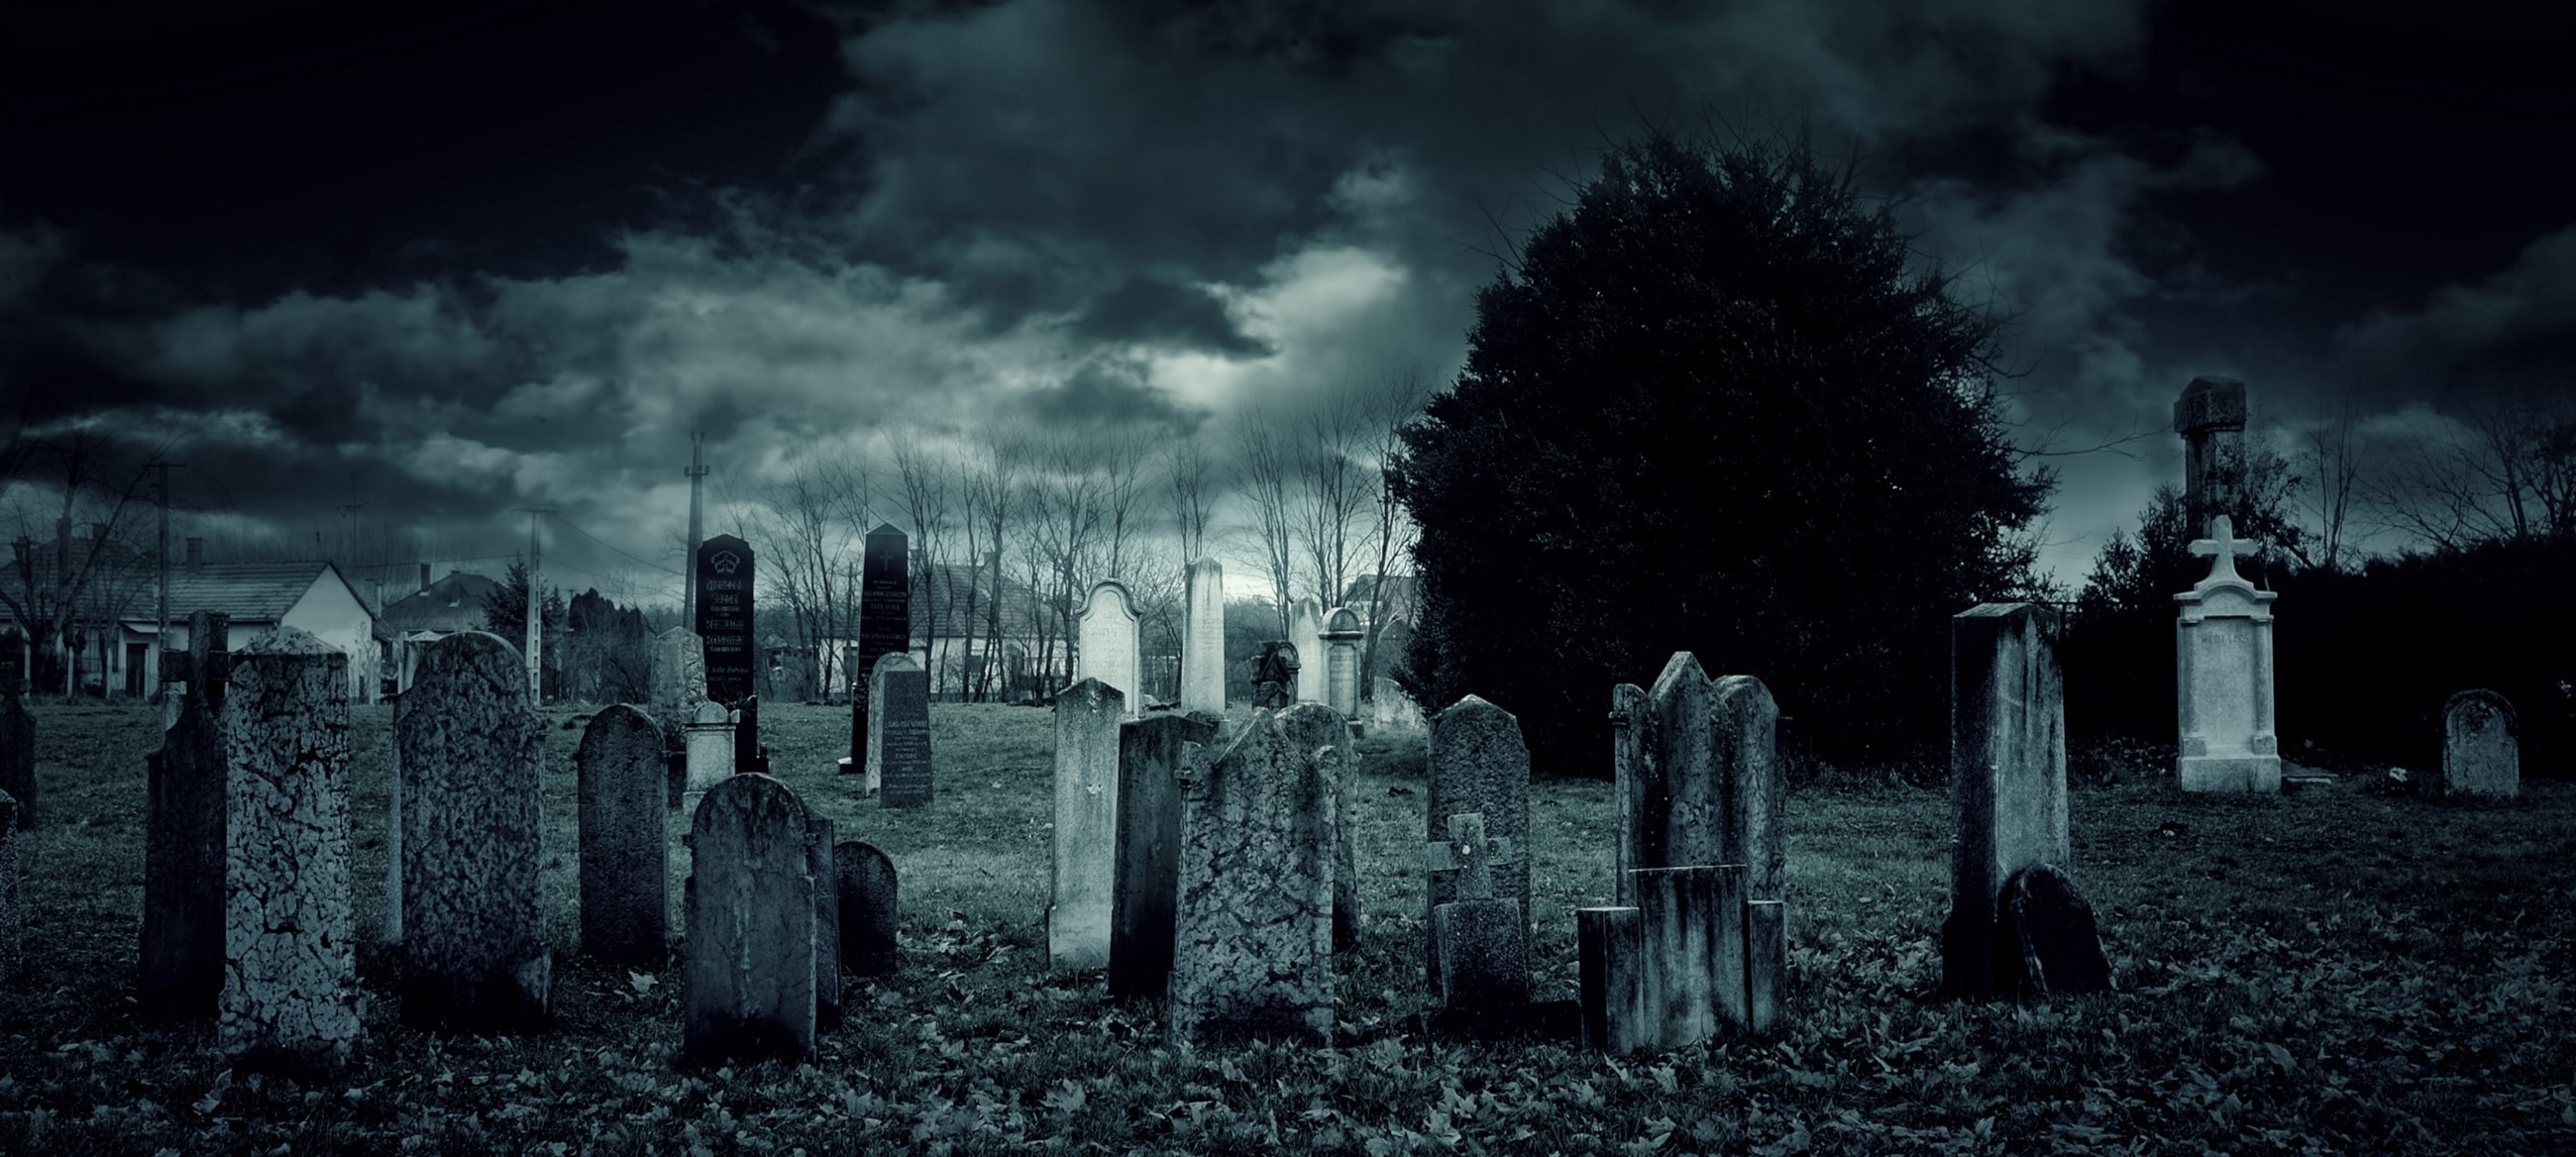 A Graveyard at Night